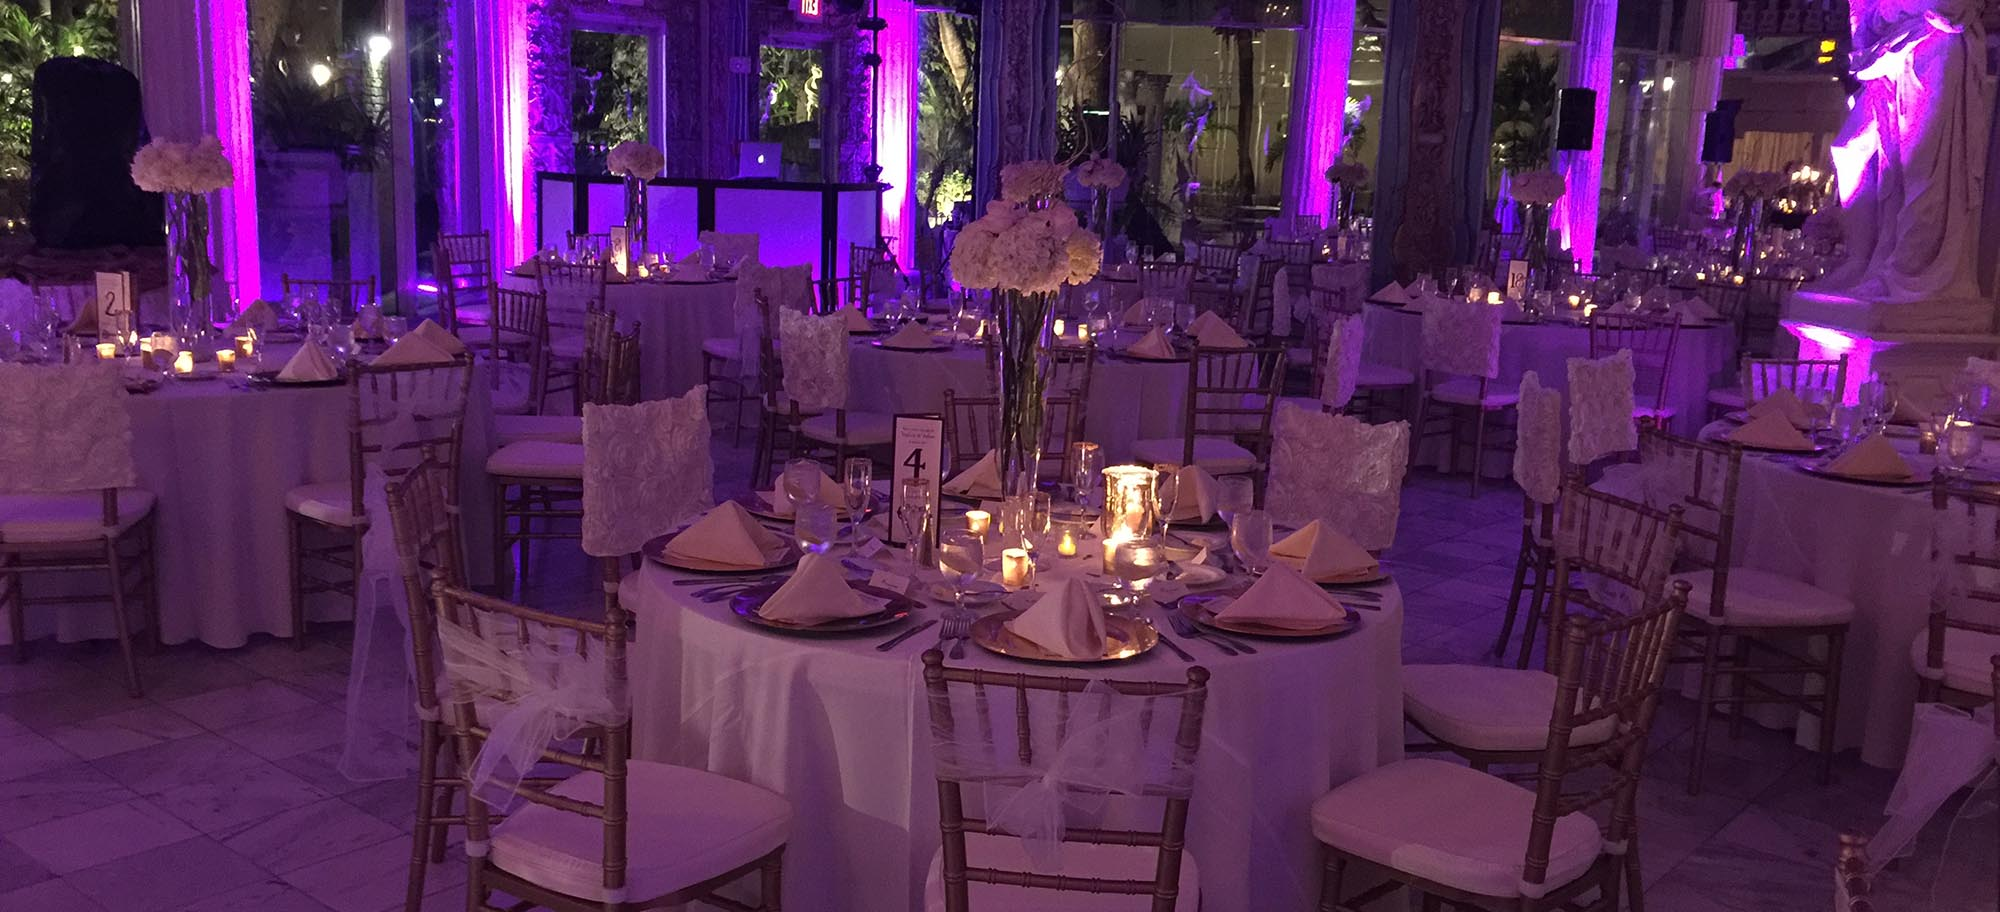 Wedding Venue with Dimmed Lights